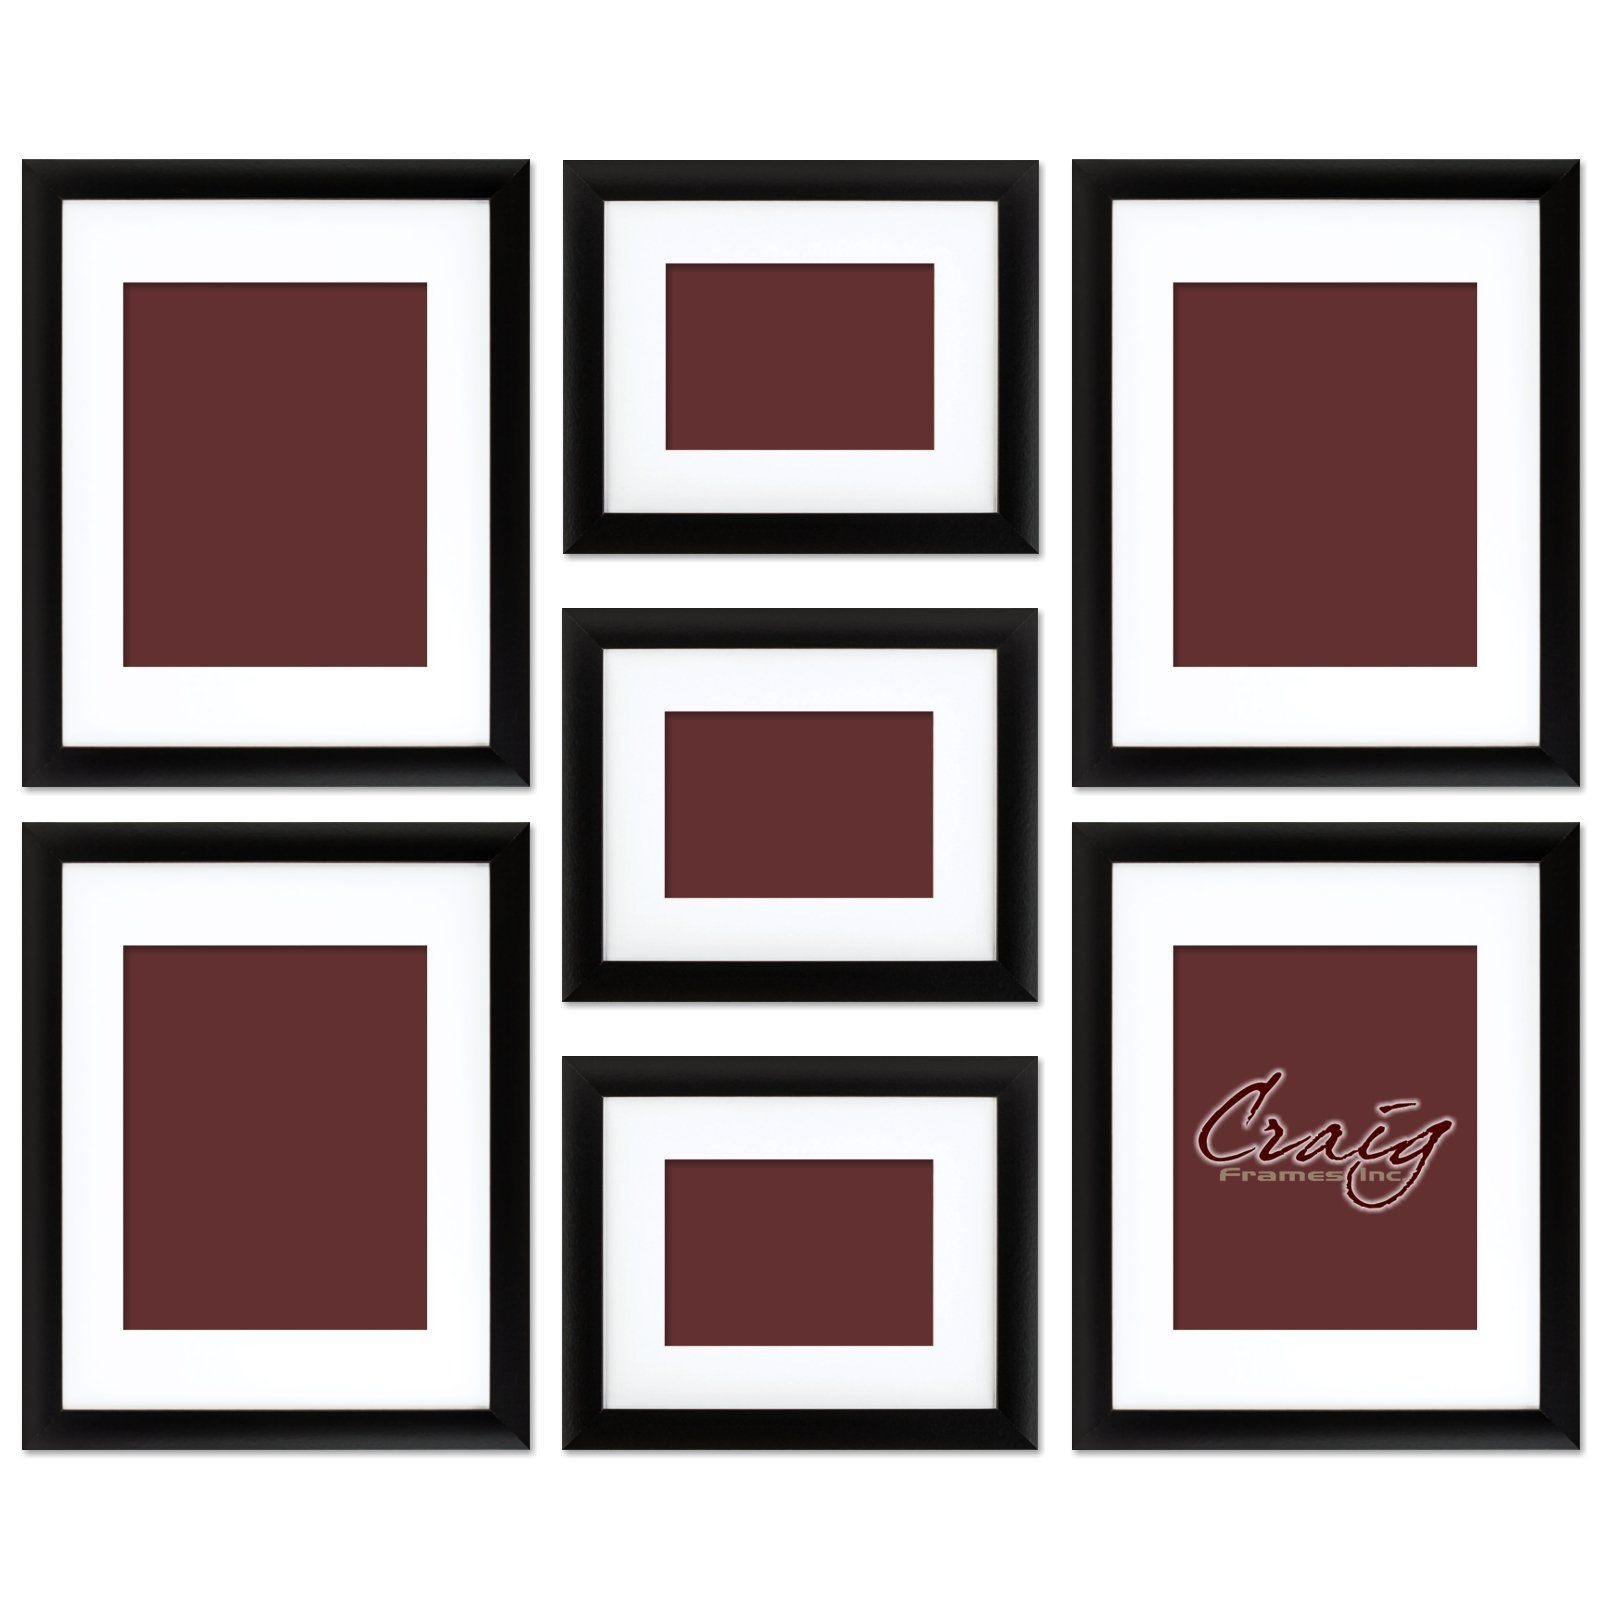 Amazon craig frames 1wb3bk picture frame 7 piece wall set craig frames picture frame wall set black frames white display mats this set of seven brand new picture frames is manufactured in the usa jeuxipadfo Images